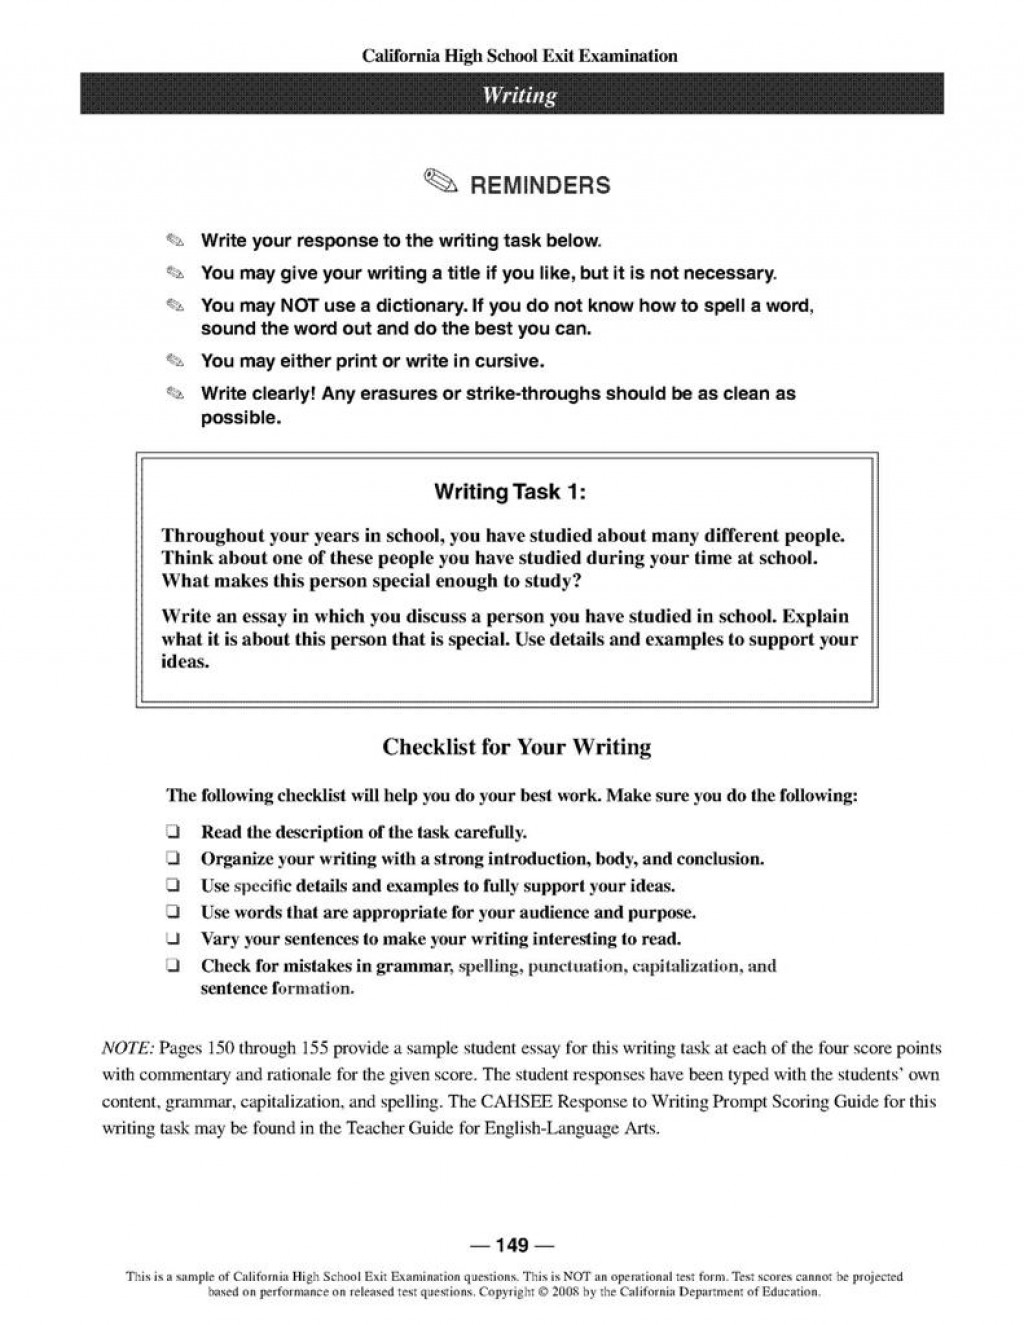 006 Prompt Definition Essay Example Person Studied Custom Fascinating Large